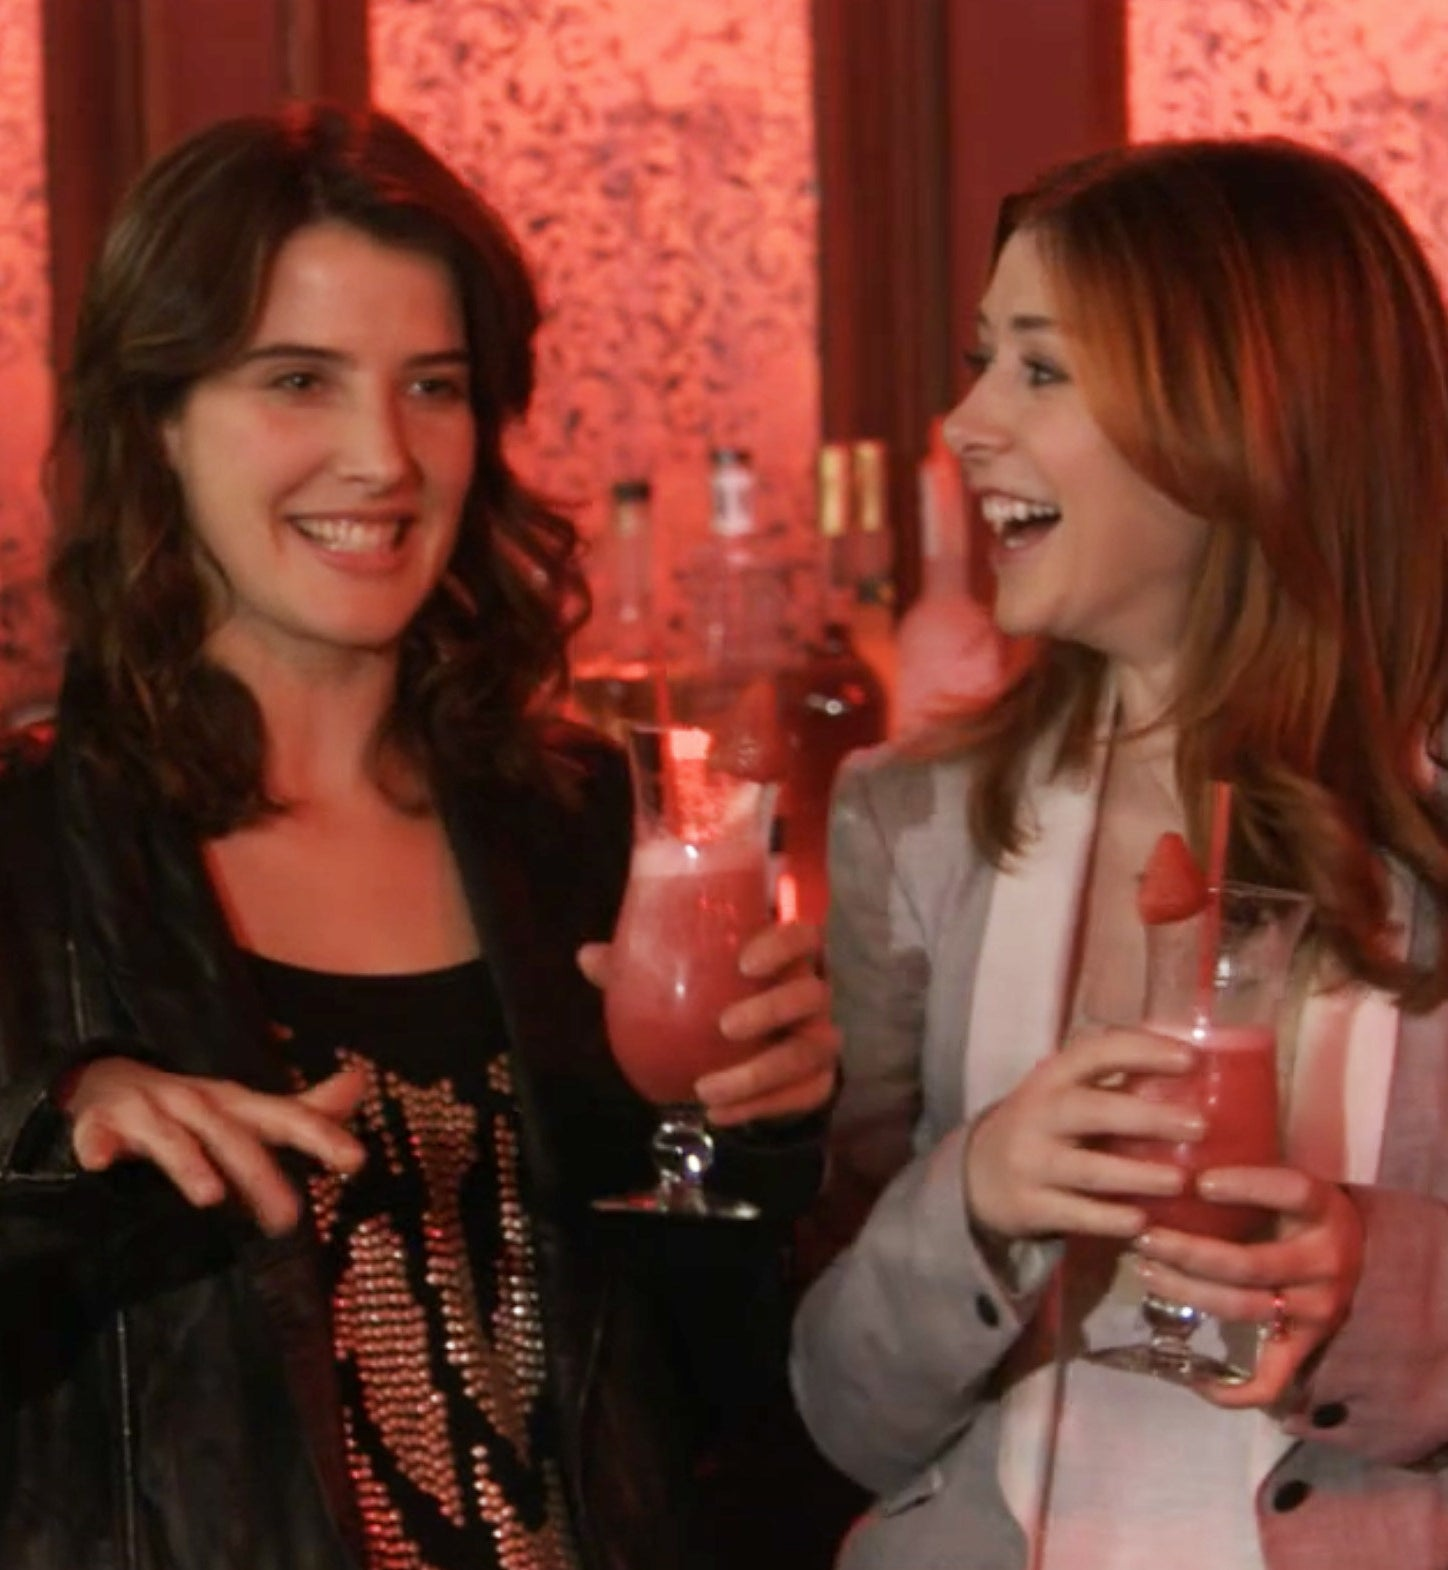 Robin and Lily having a drink at a bar in How I Met Your Mother